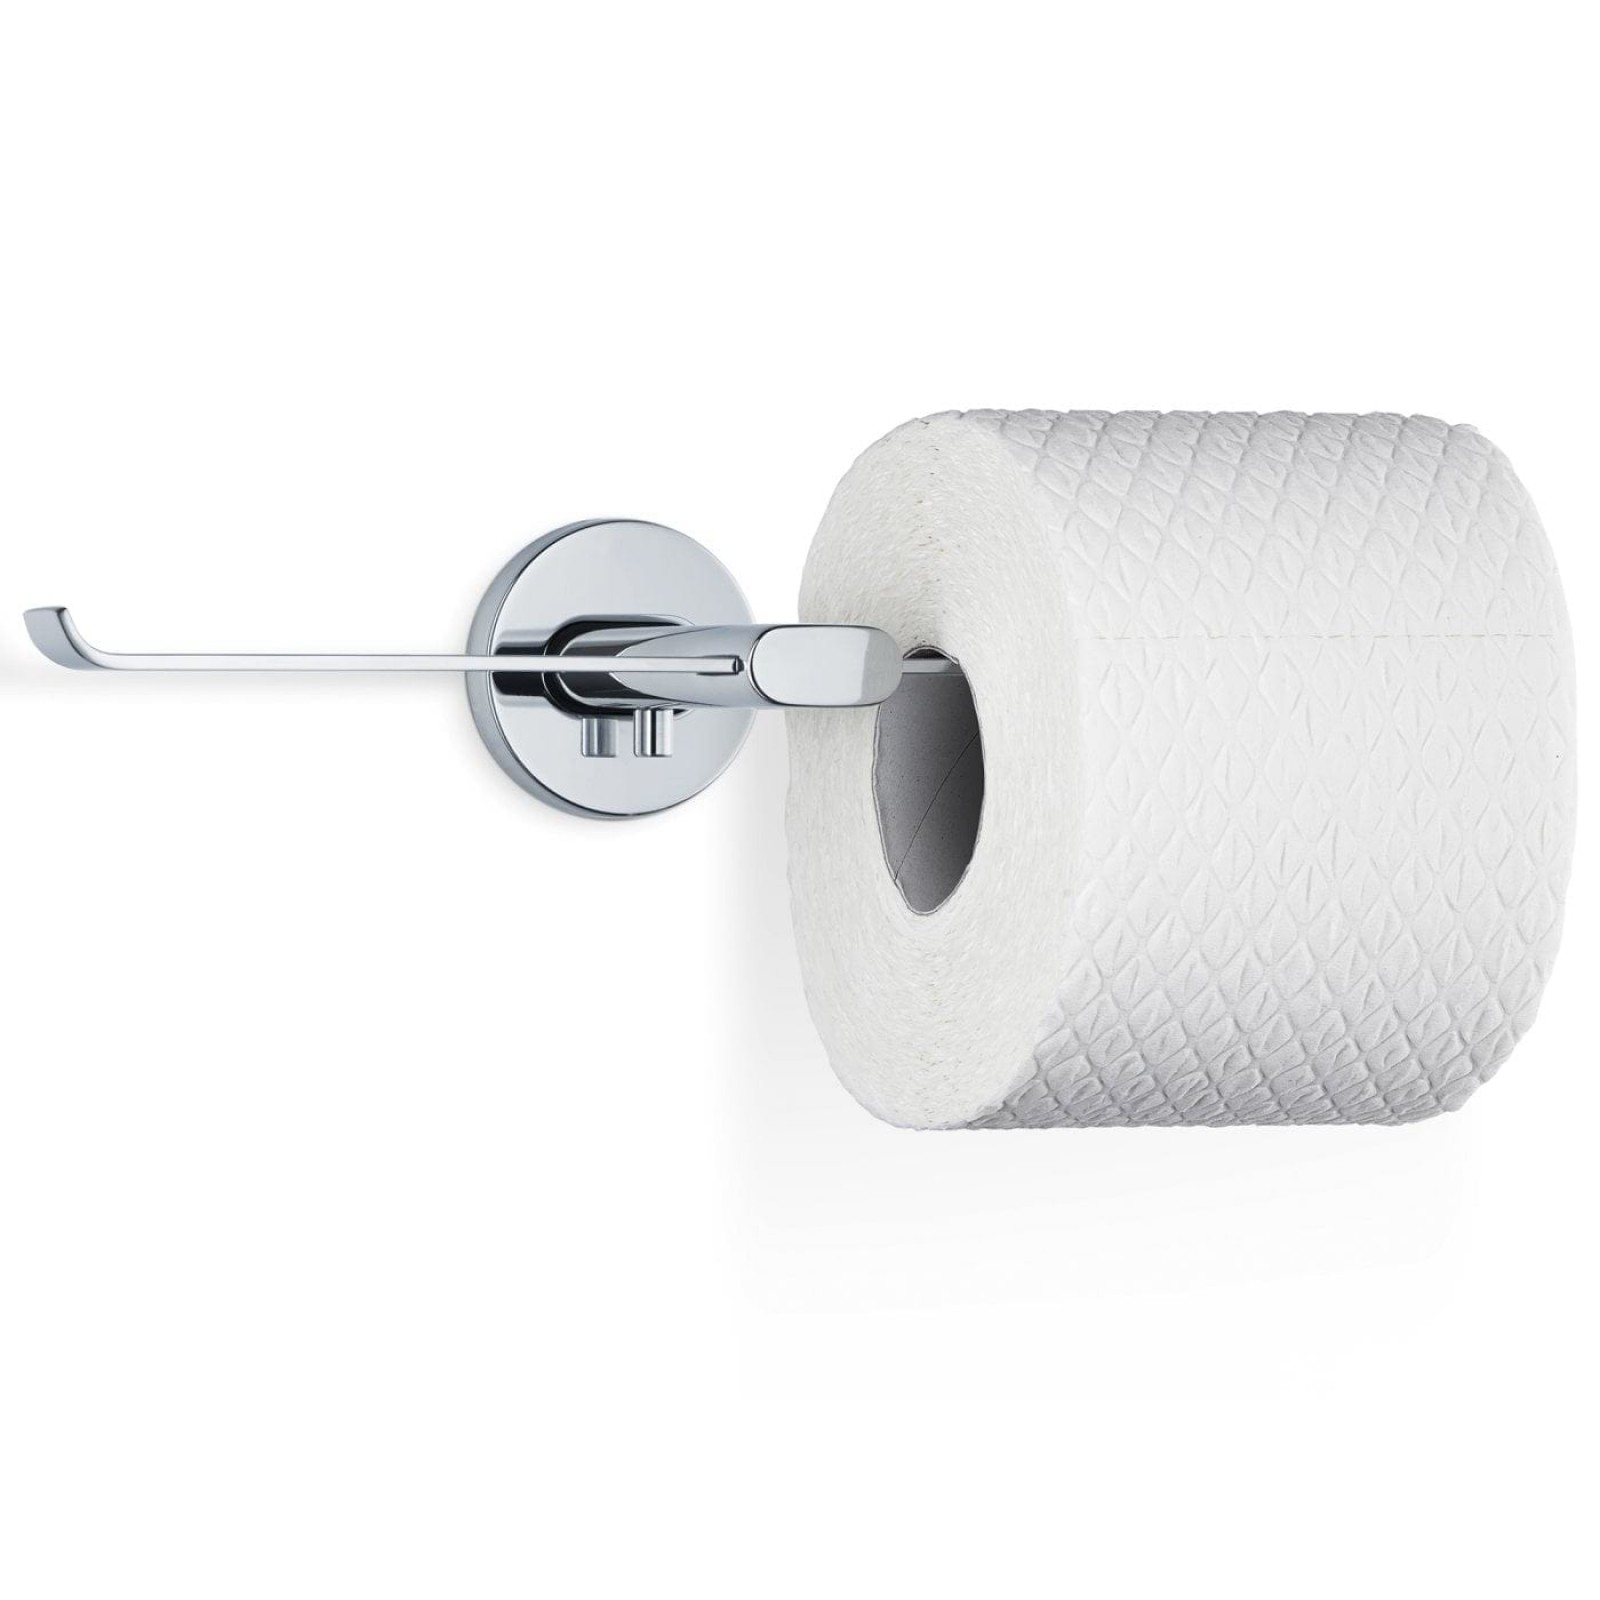 AREO Twin Toilet Paper Holder (Stainless Steel Polished) - Blomus